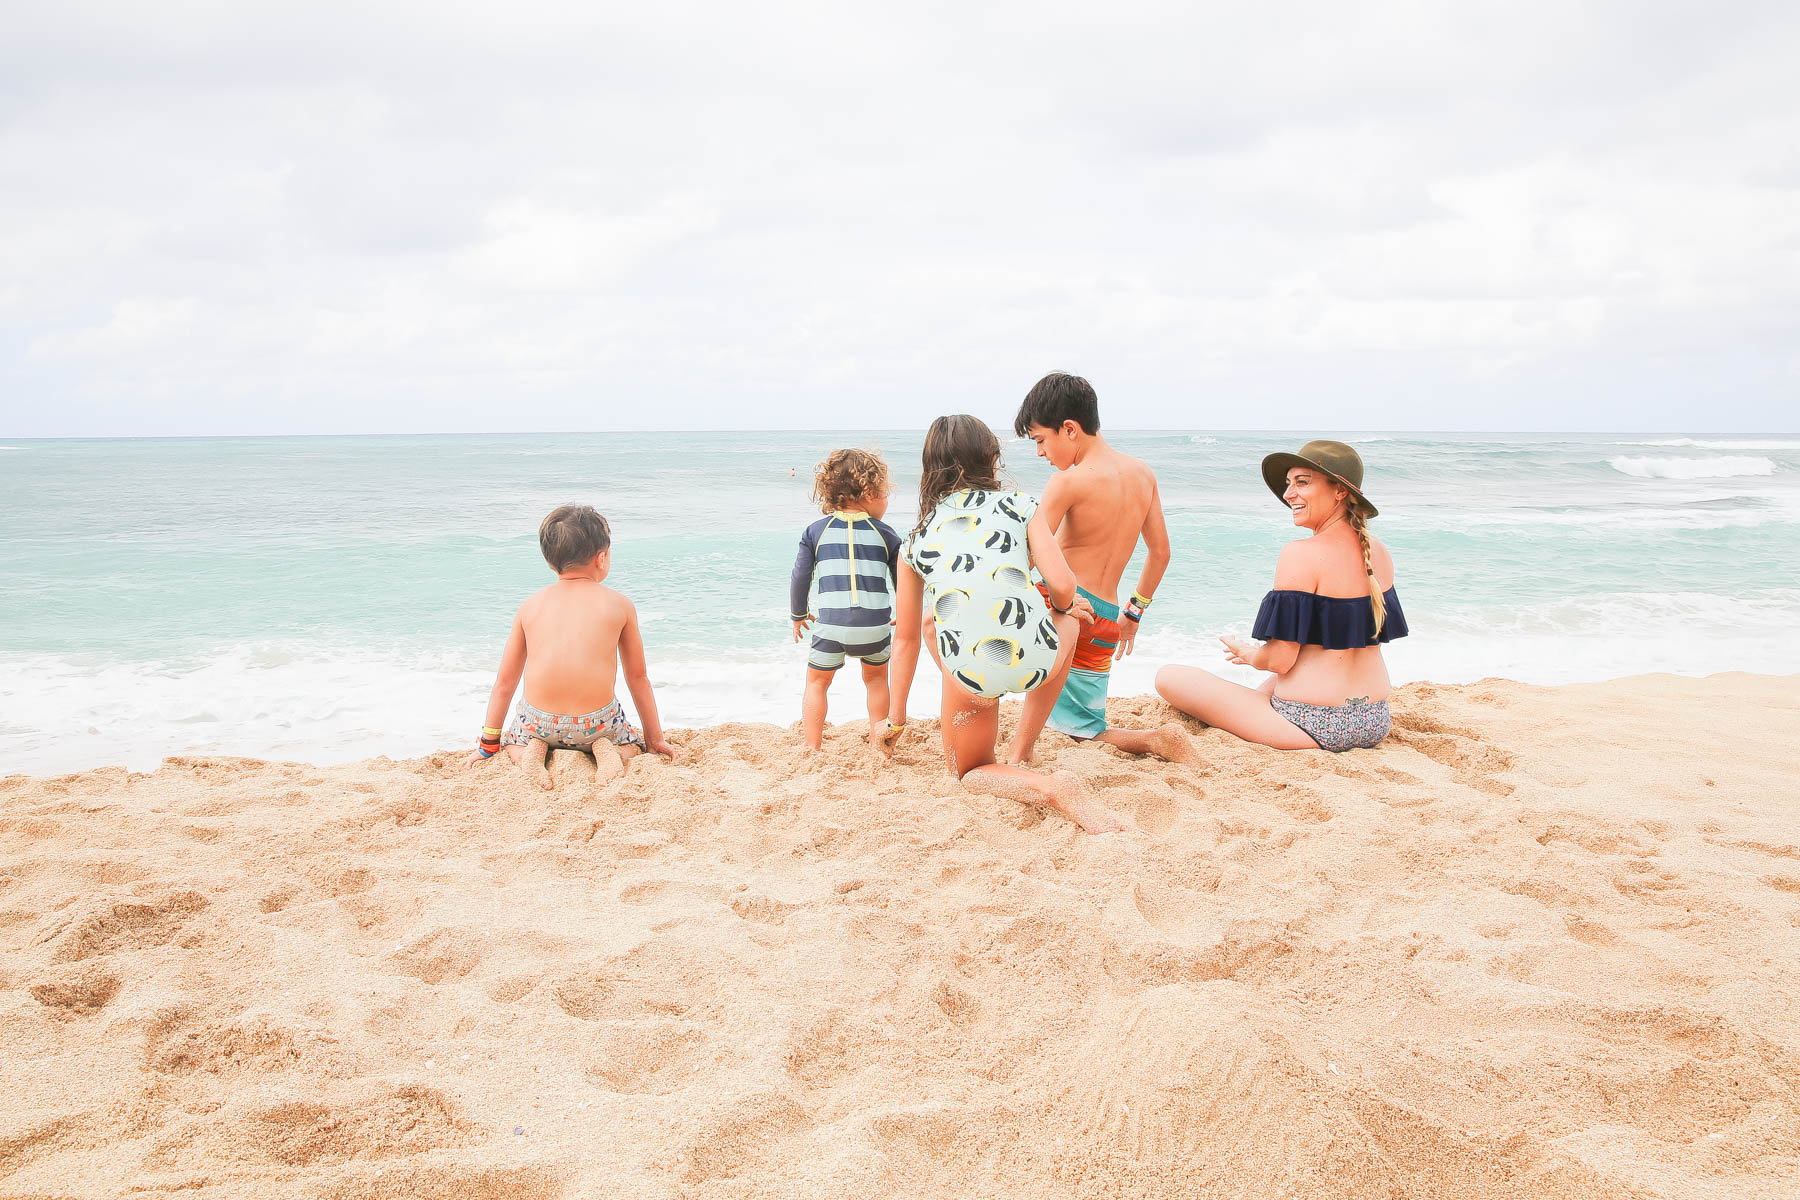 Hawaii beach with family